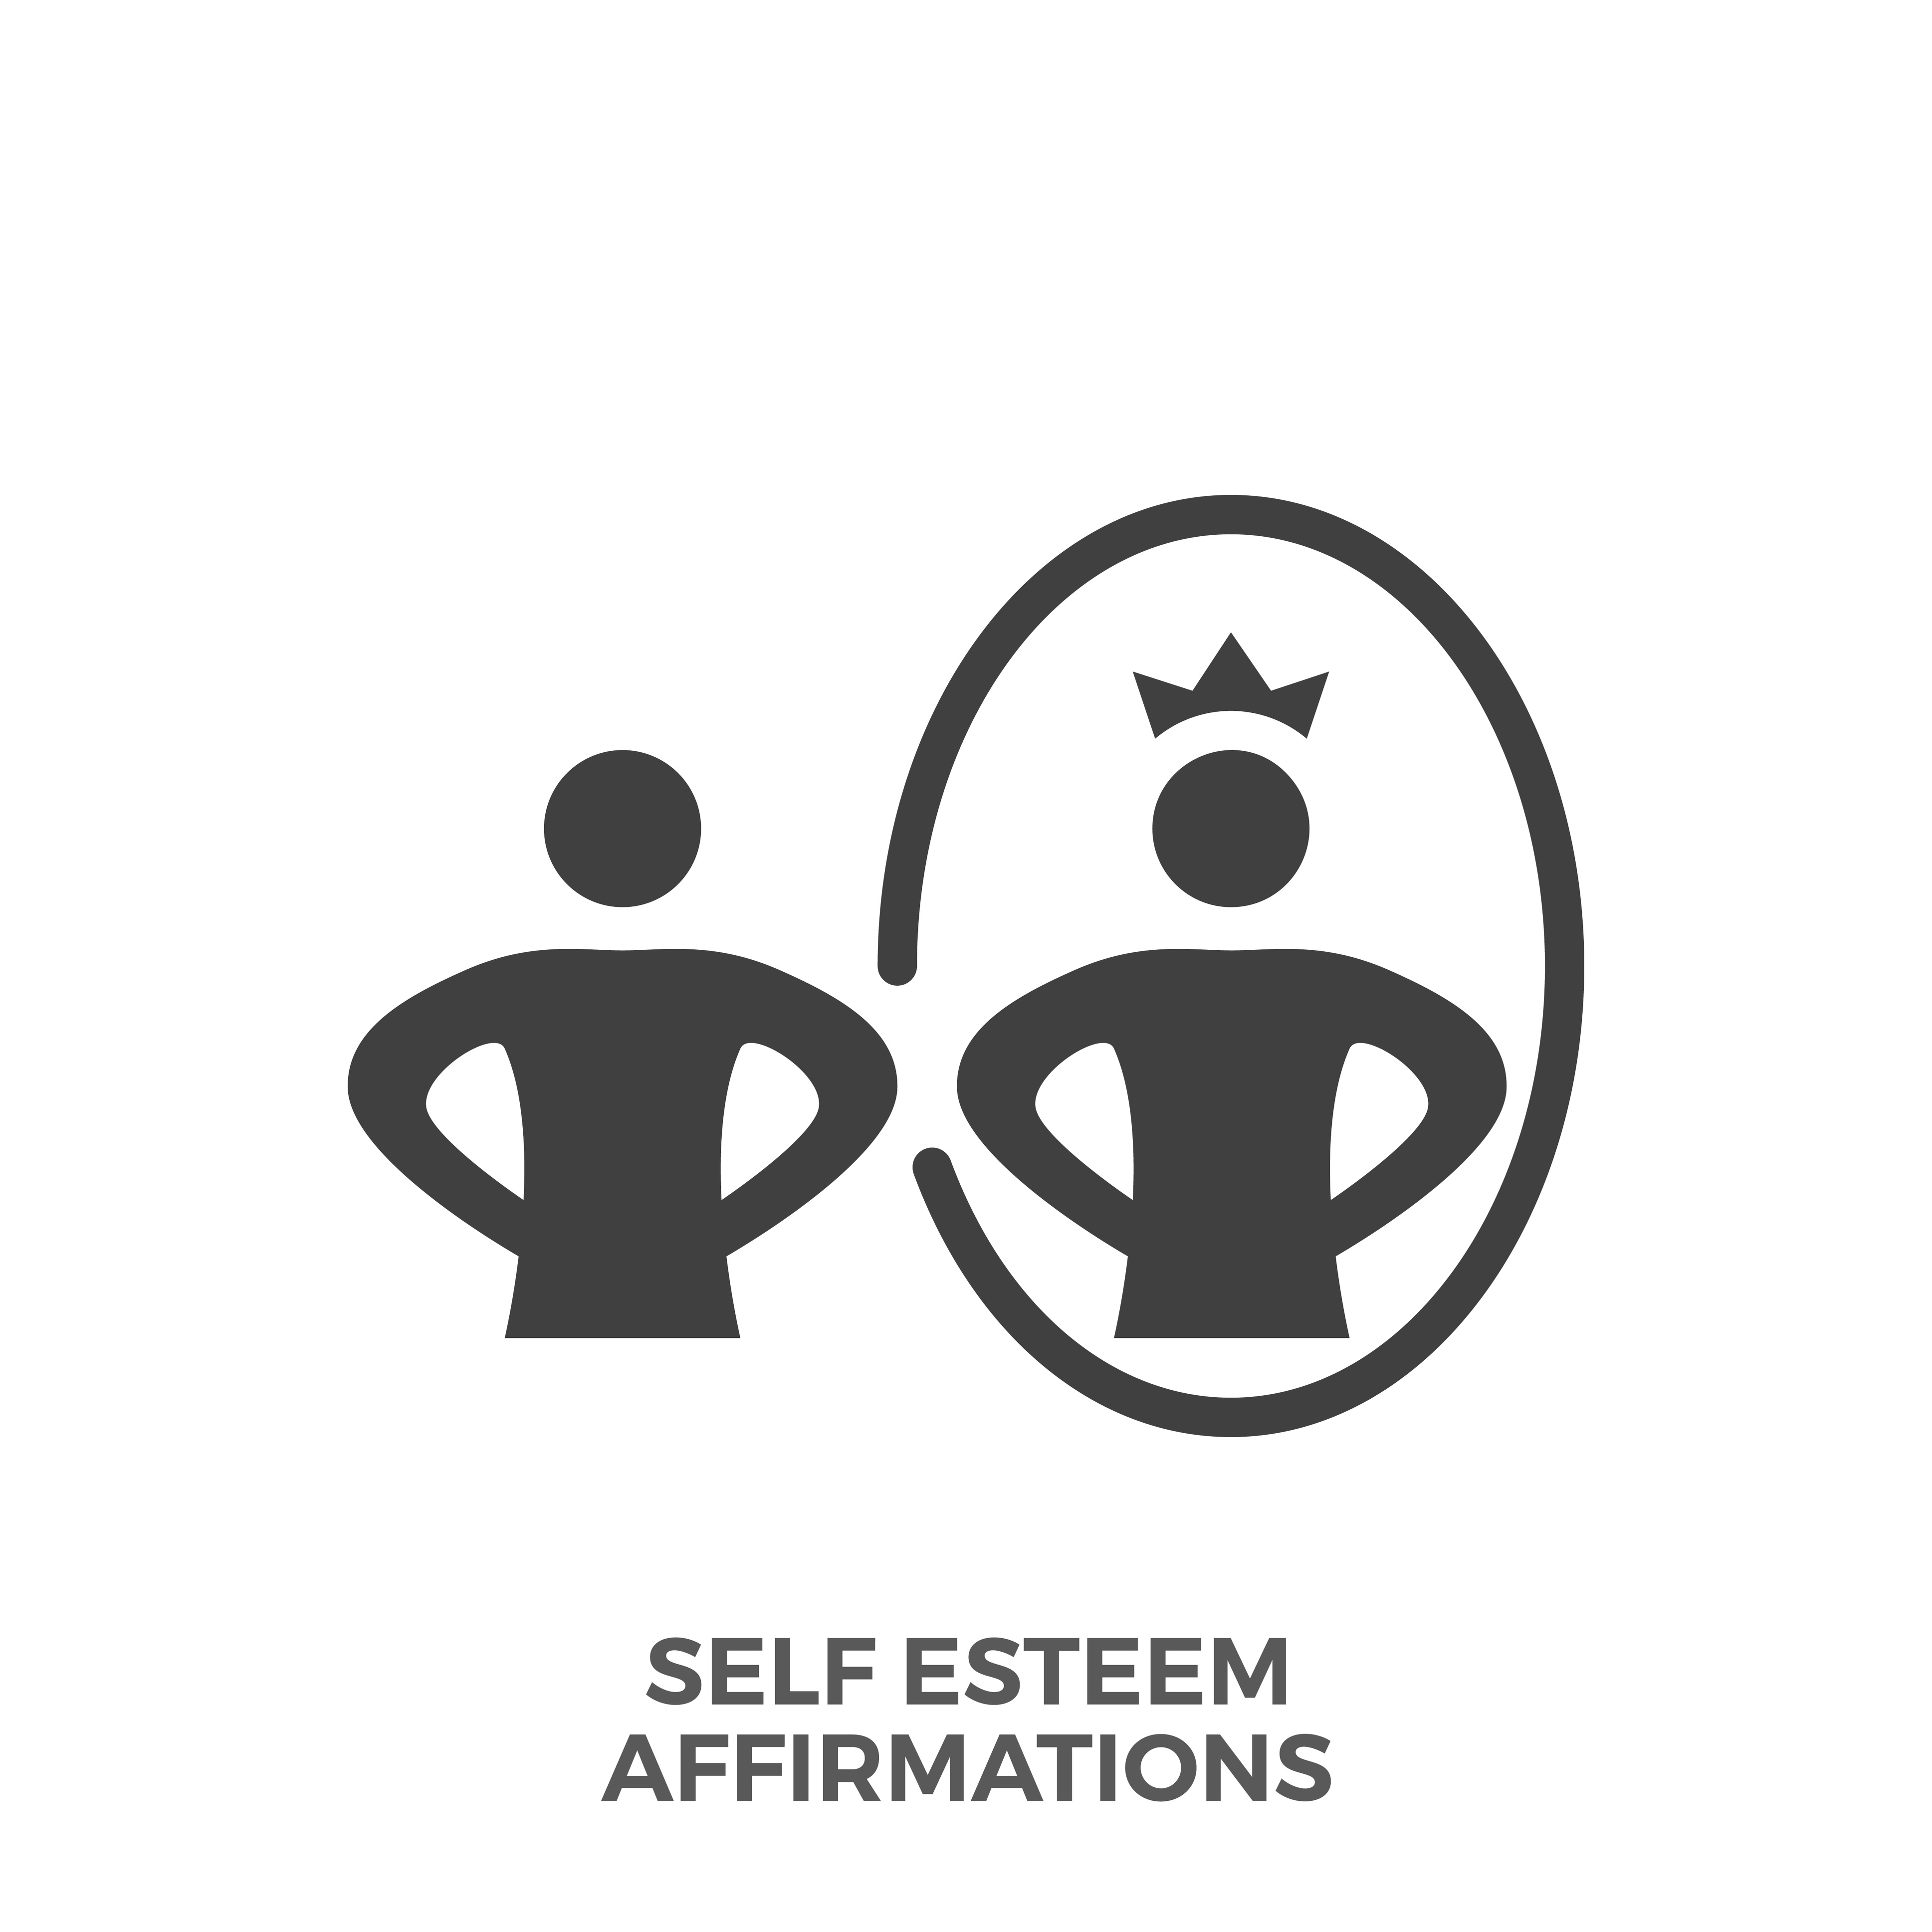 Self Esteem Affirmations Glyph Vector Icon.